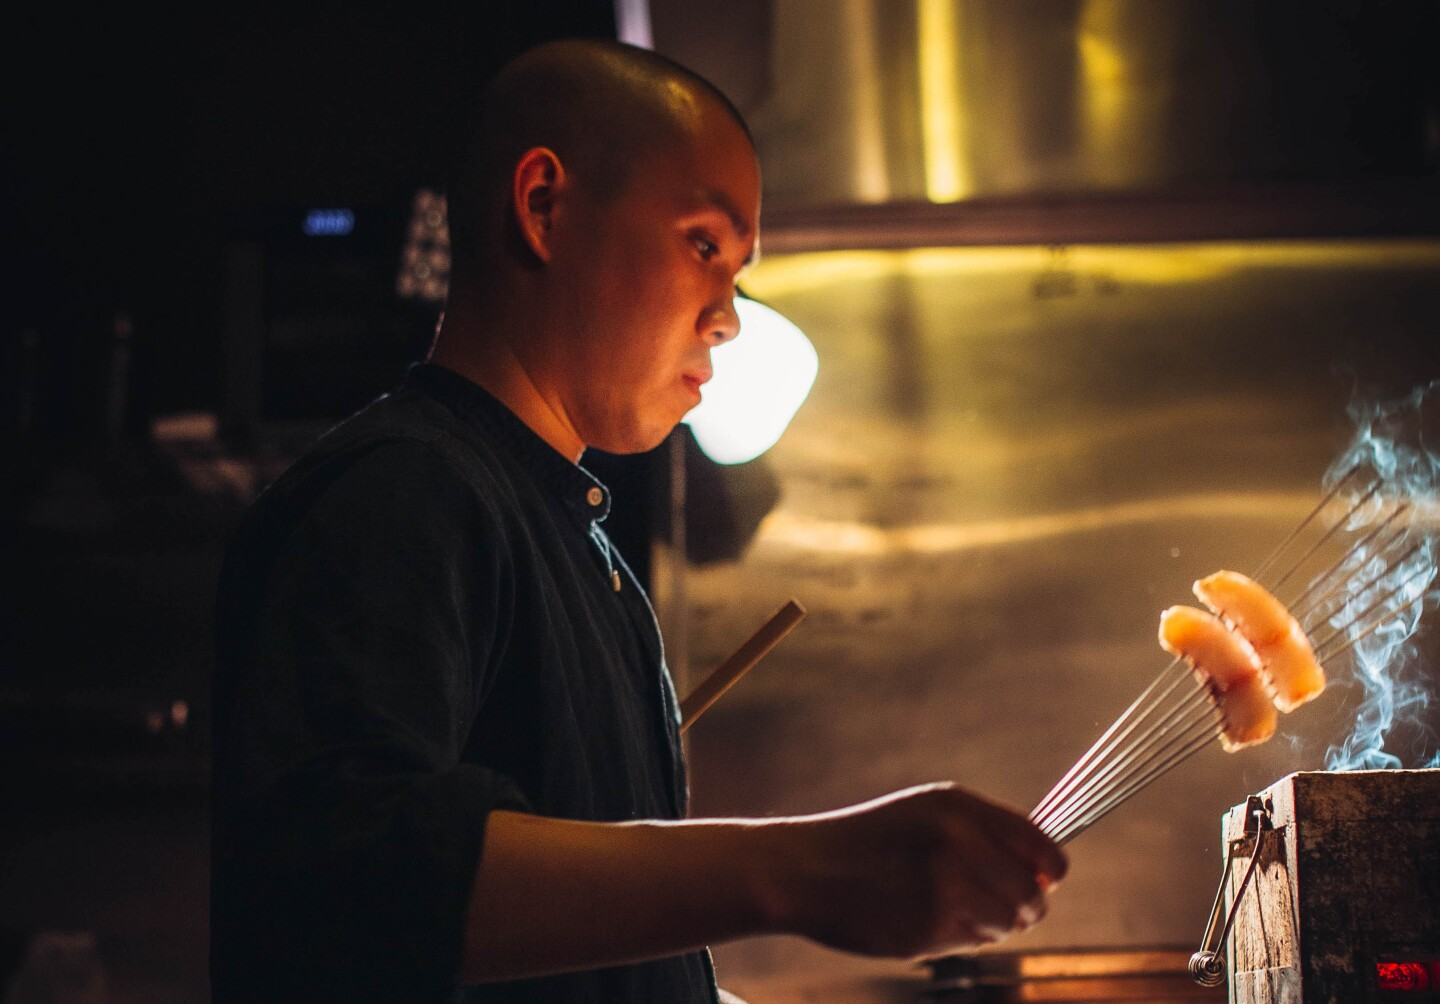 Chef Jon Yao cooks two skewered, bite-sized pieces of fish over a smokey box. He's standing in a dark kitchen and his face is lit by a warm, orange light coming from beneath him.